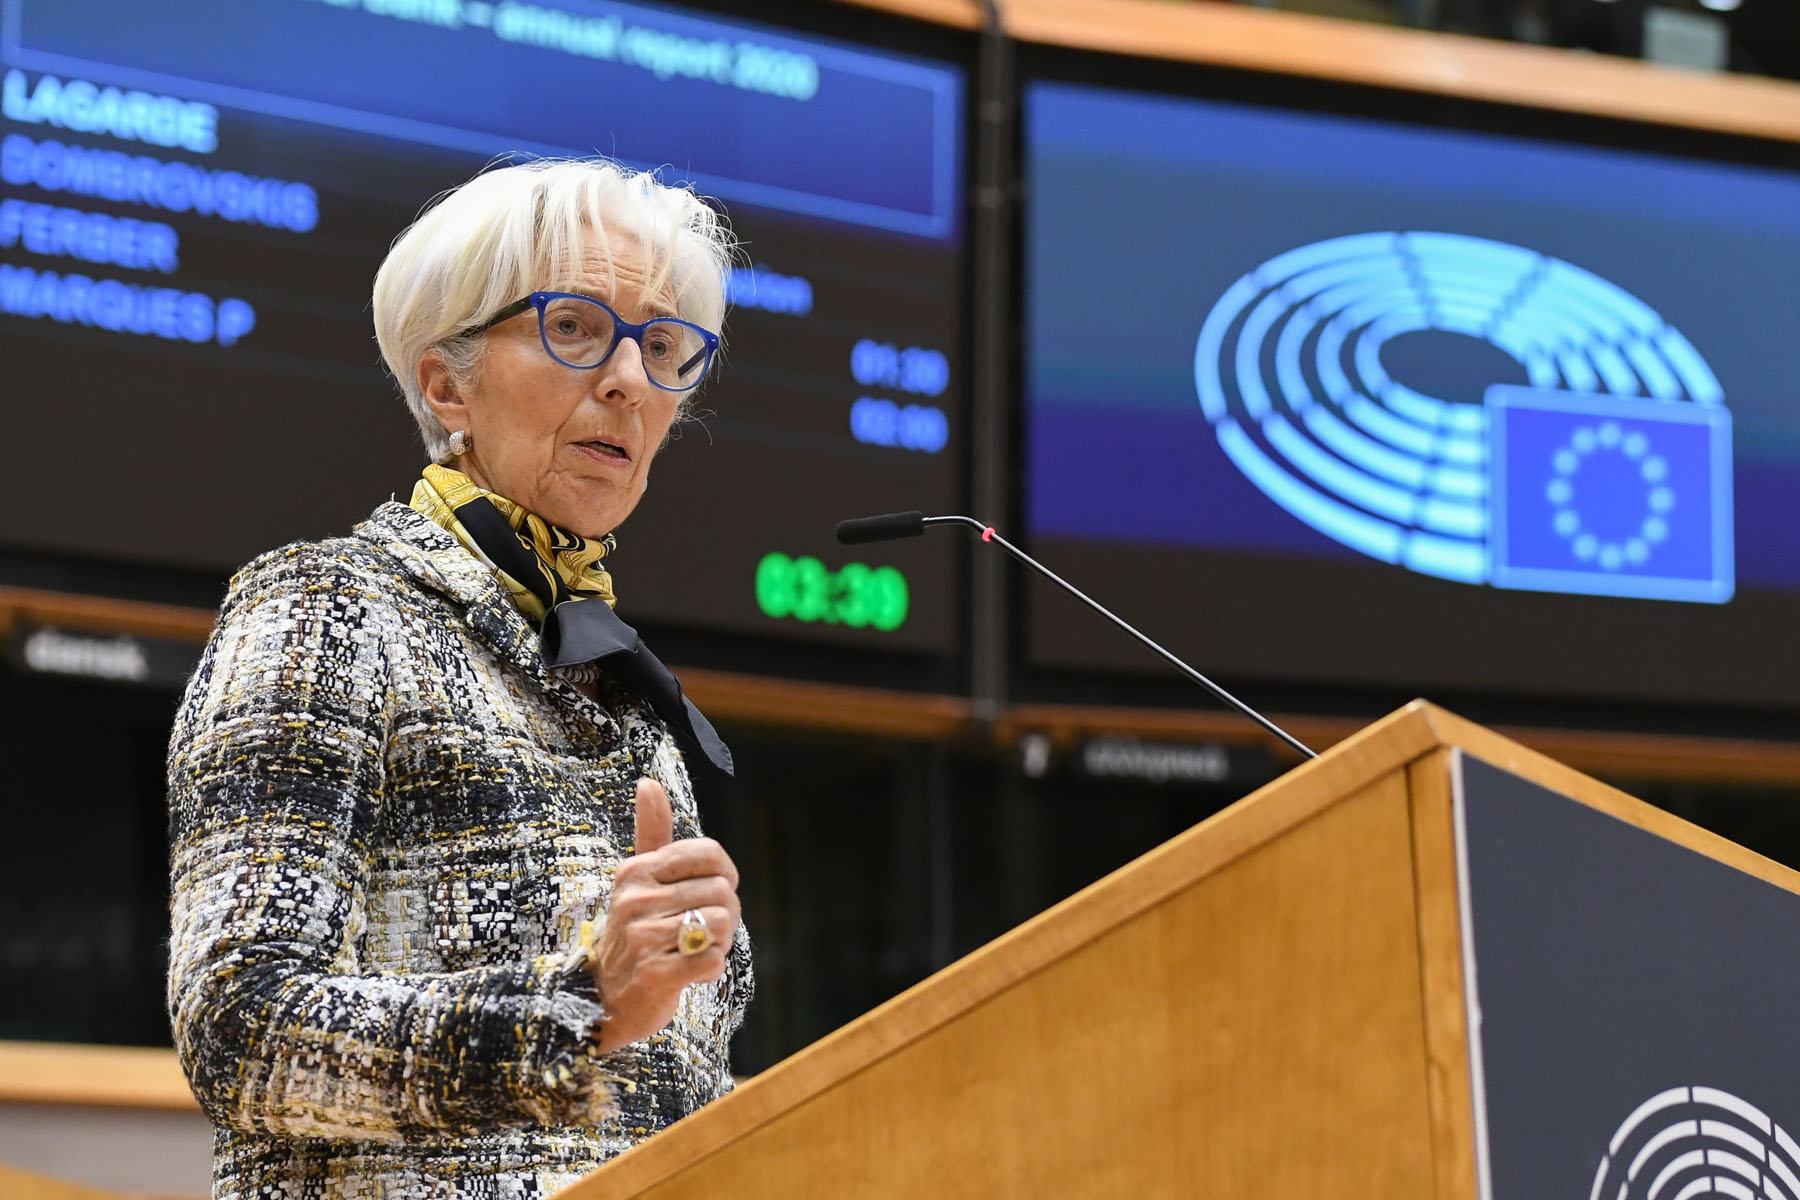 MEPs call on ECB to prepare for looming economic difficulties   News   European Parliament